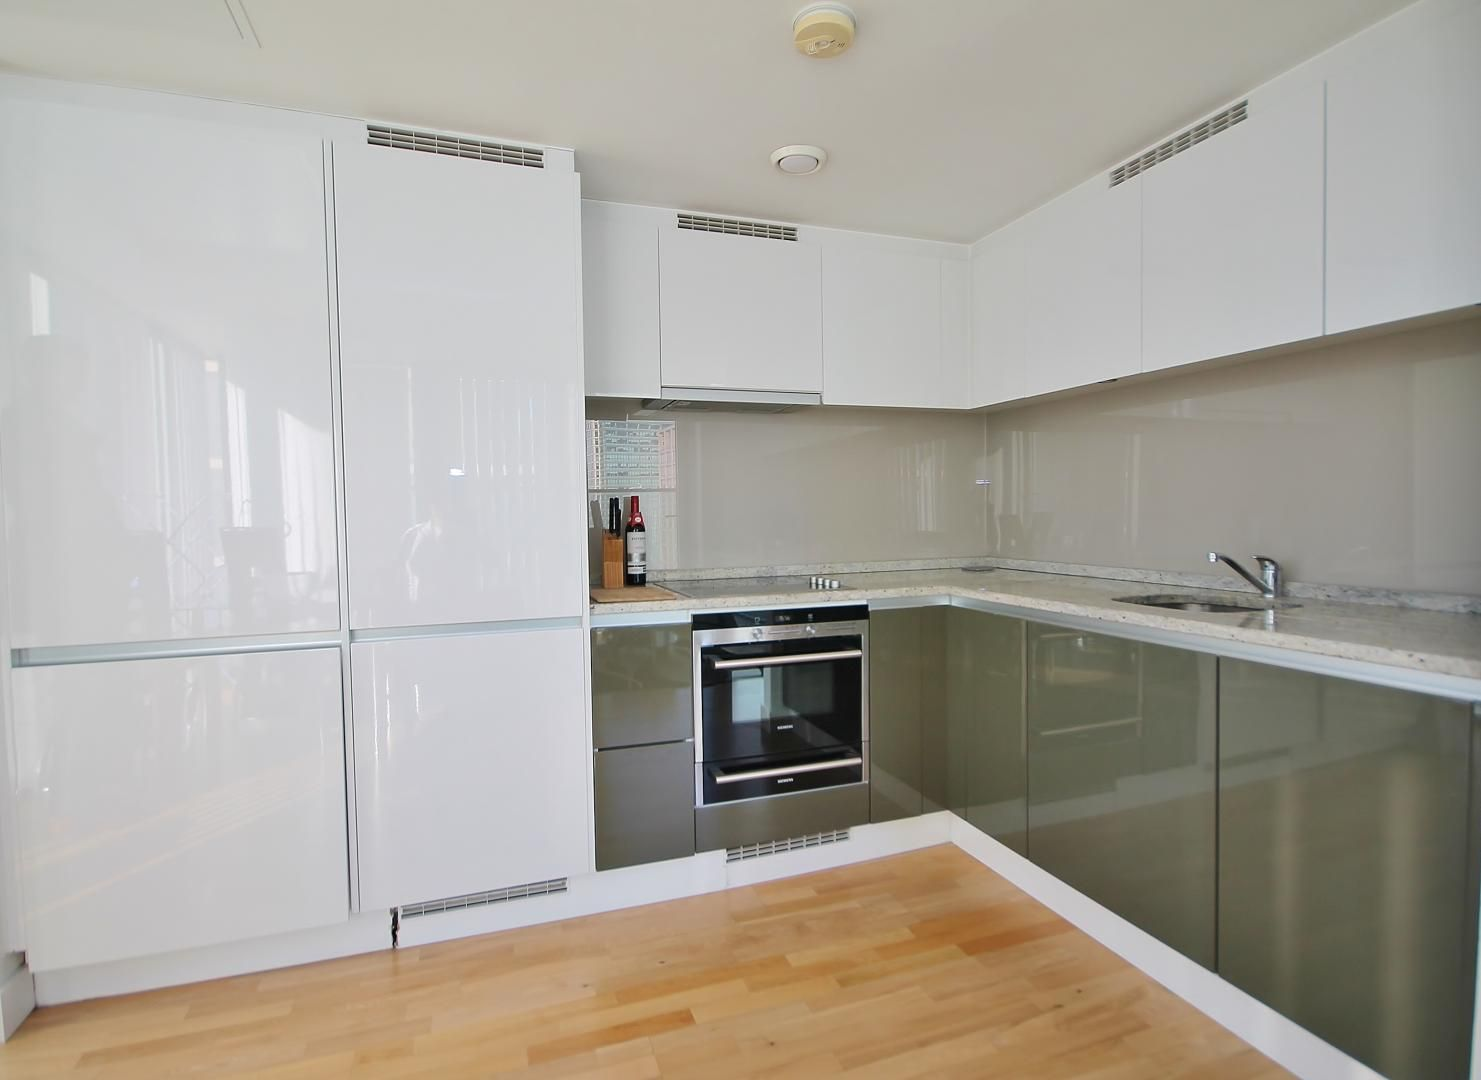 2 bed  to rent in Marsh Wall, E14